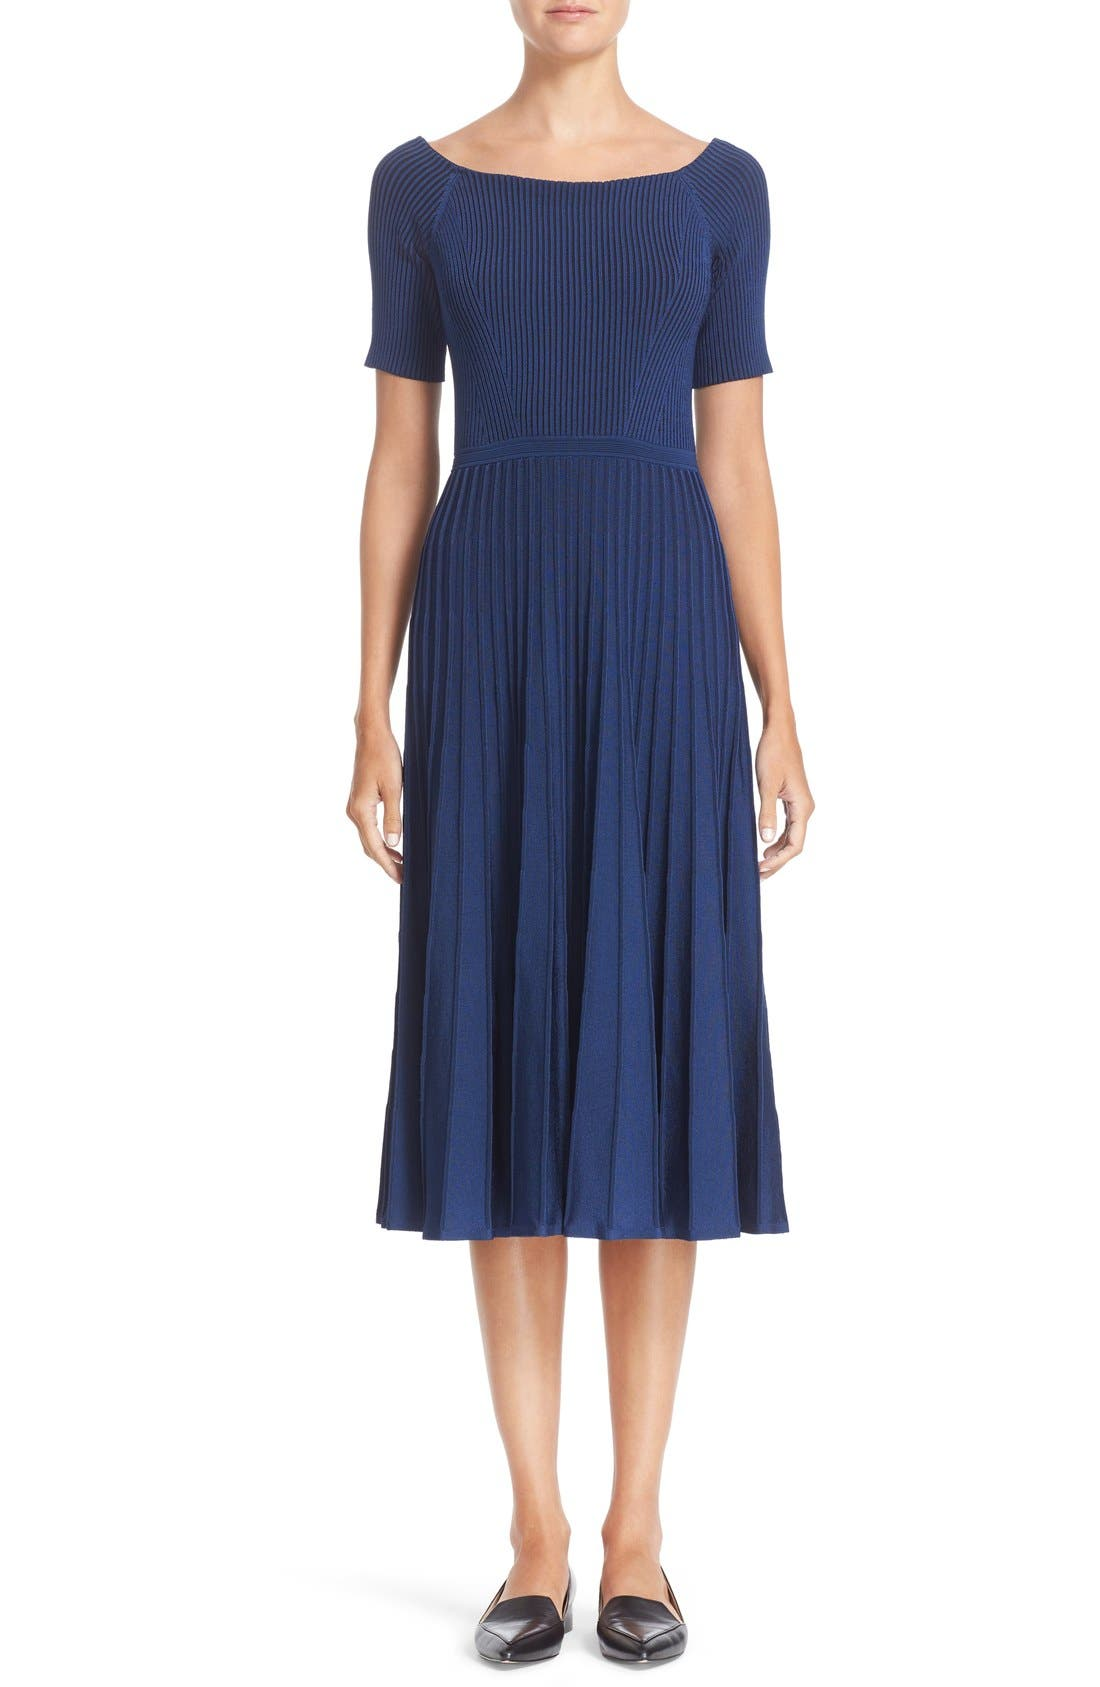 JASON WU Rib Knit Midi Dress